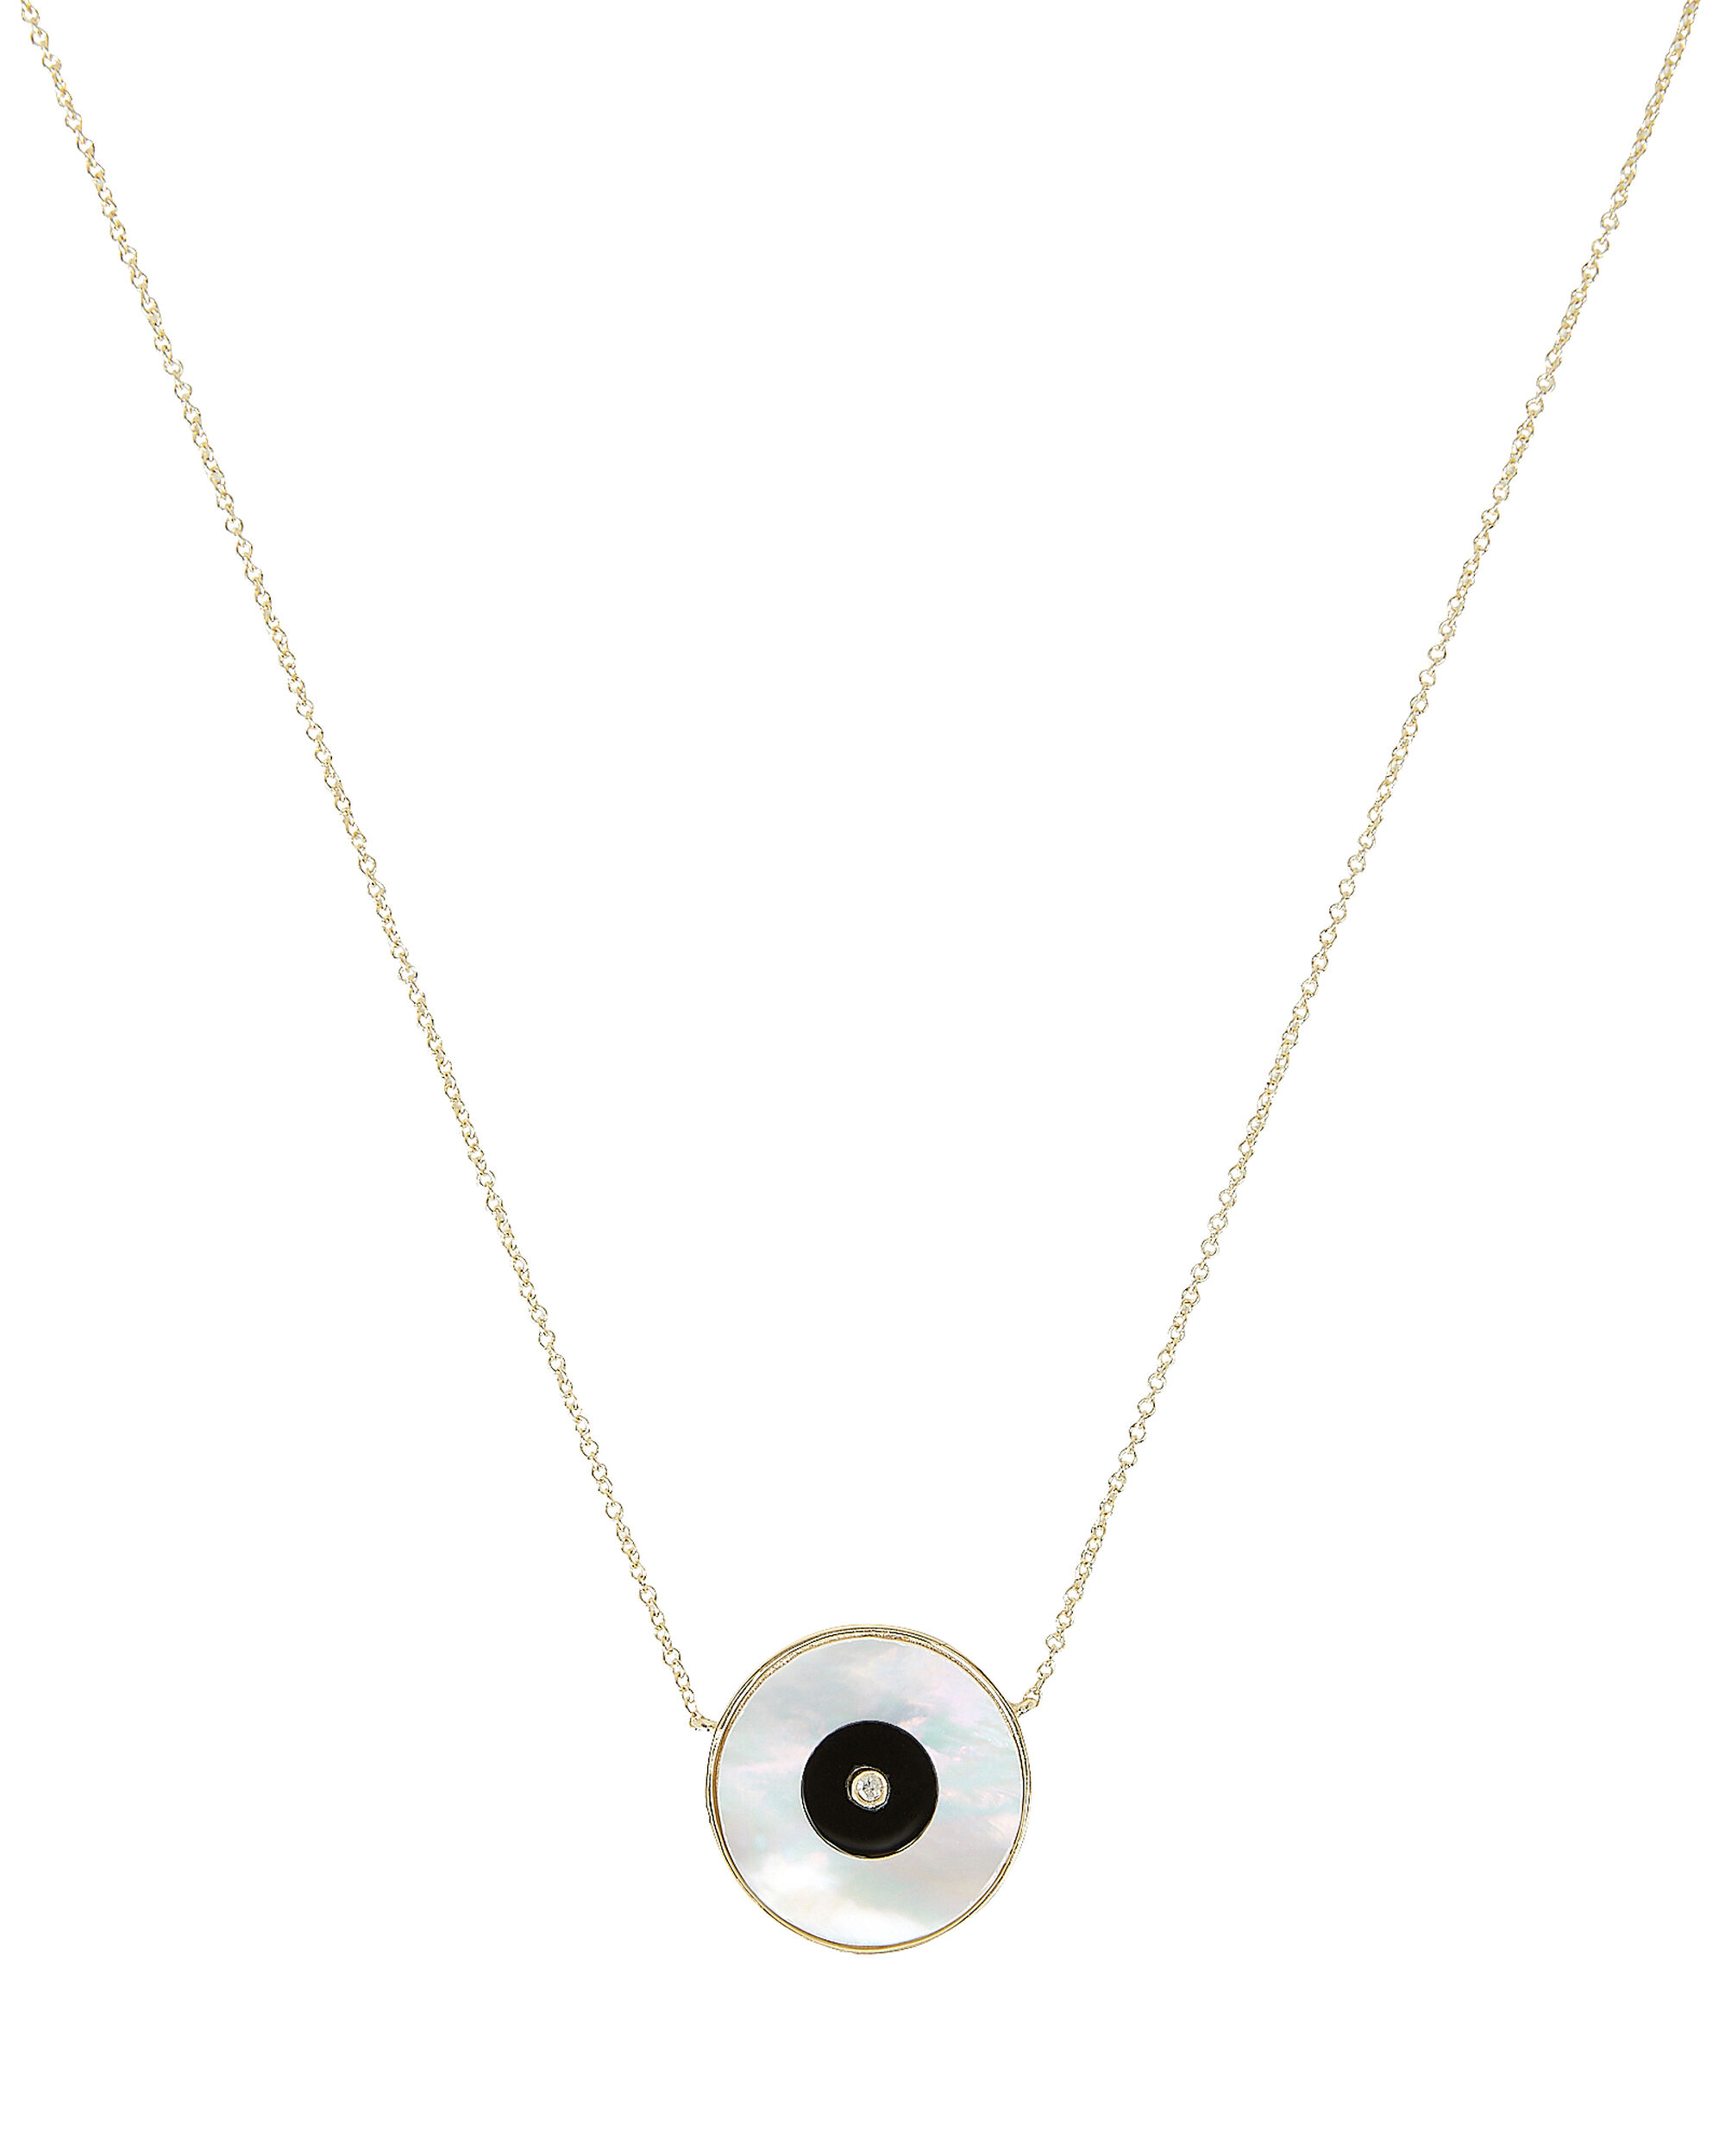 Danai Eye Necklace, GOLD/PEARL, hi-res